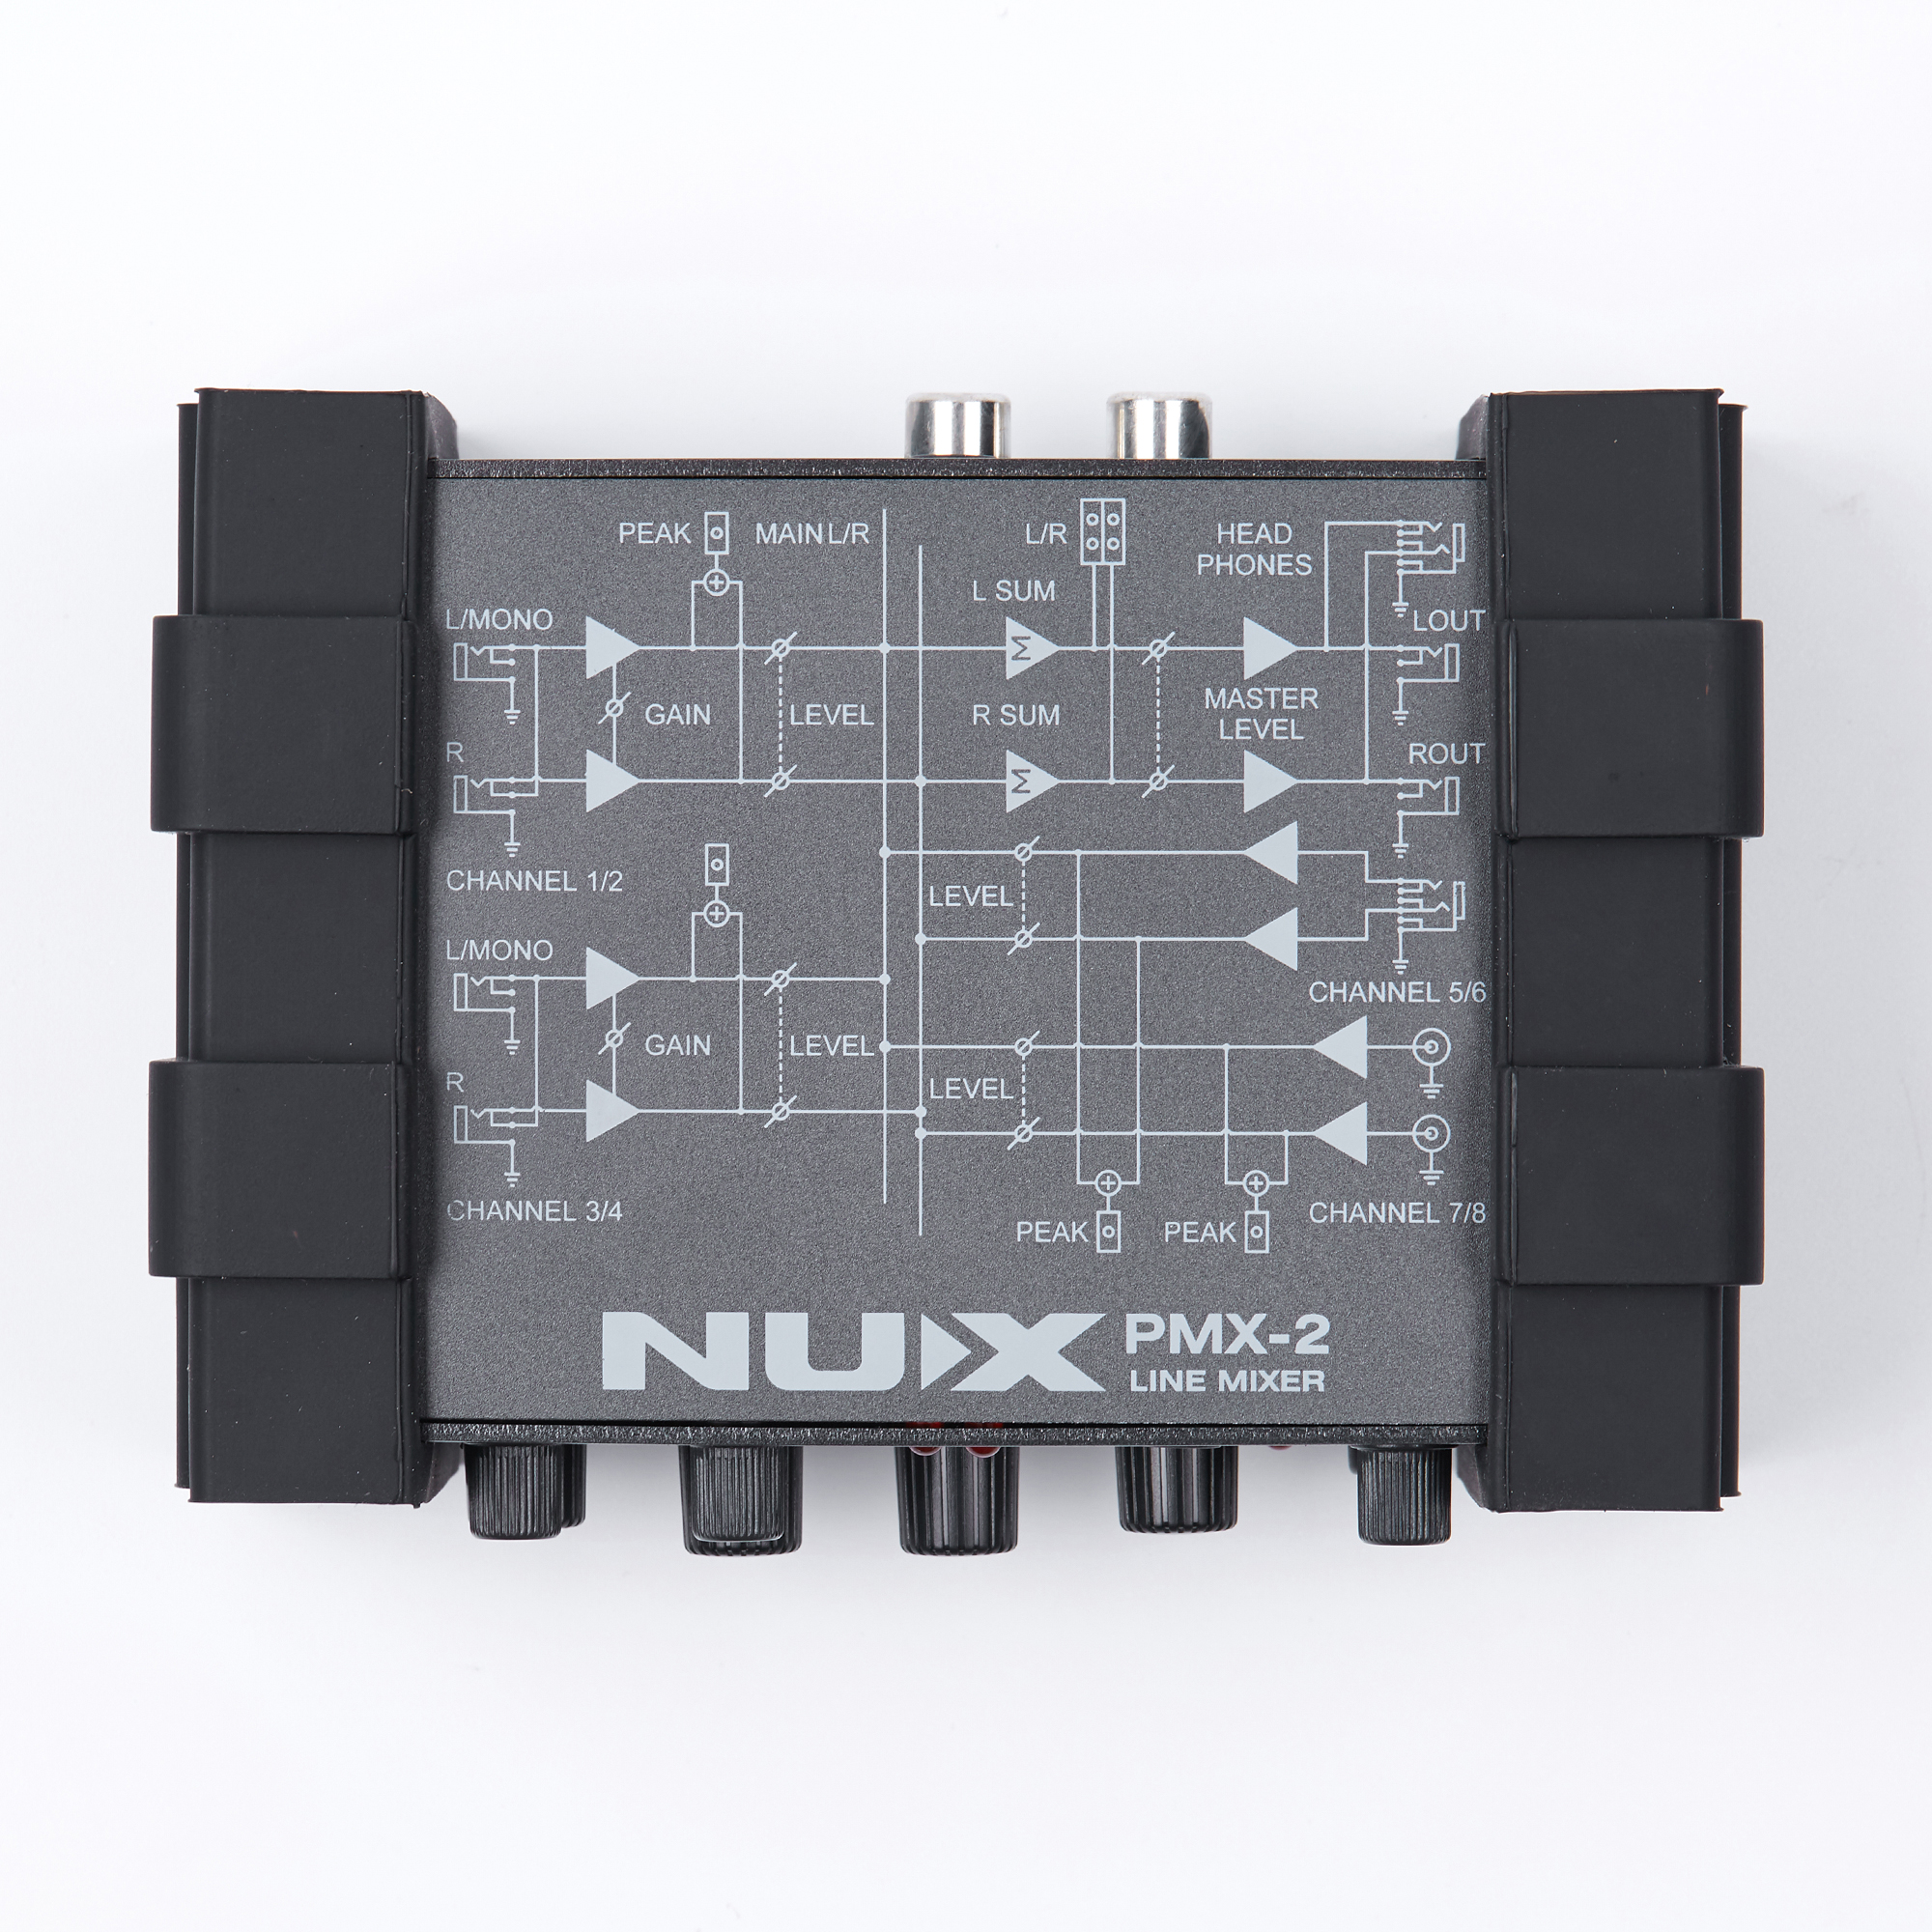 Gain Control 8 Inputs and 2 Outputs NUX PMX-2 Multi-Channel Mini Mixer 30 Musical Instruments Accessories for Guitar Bass Player lucide спот lucide xyrus 23954 10 30